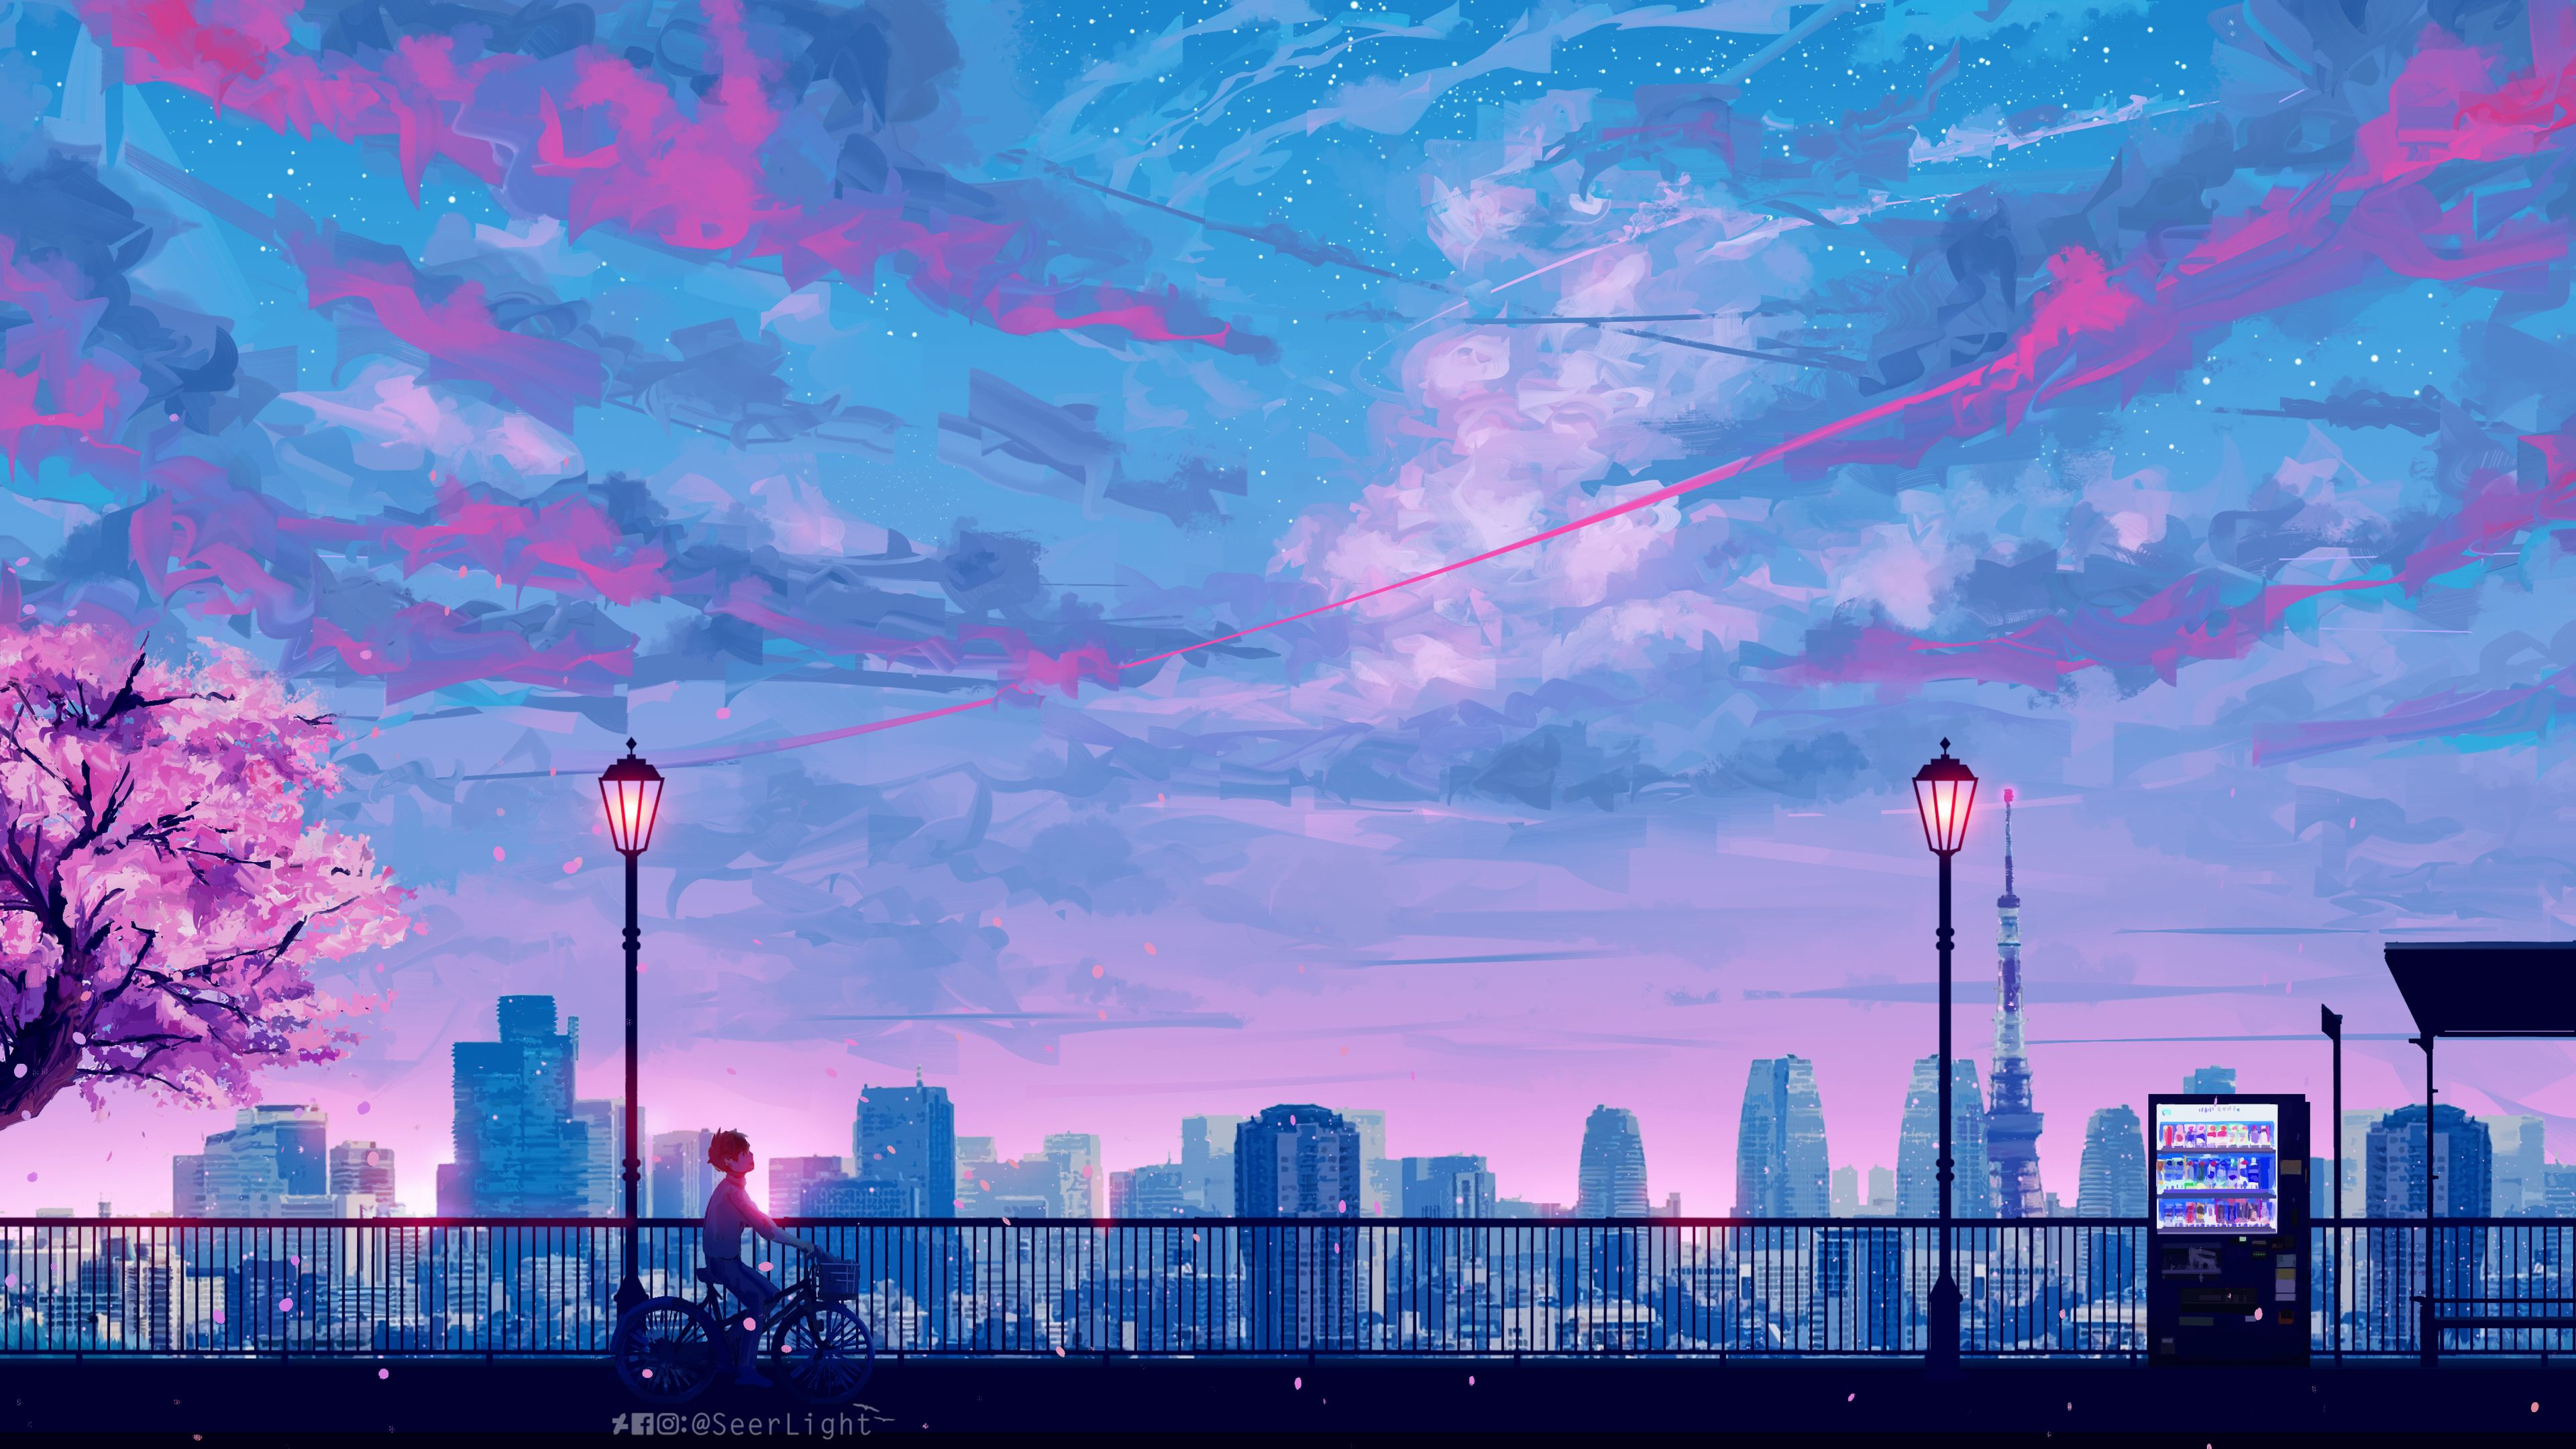 Anime Cityscape Landscape Scenery 4k Scenery Wallpapers Landscape Wallpapers Hd Wallpapers Scenery Wallpaper Cityscape Wallpaper Aesthetic Desktop Wallpaper